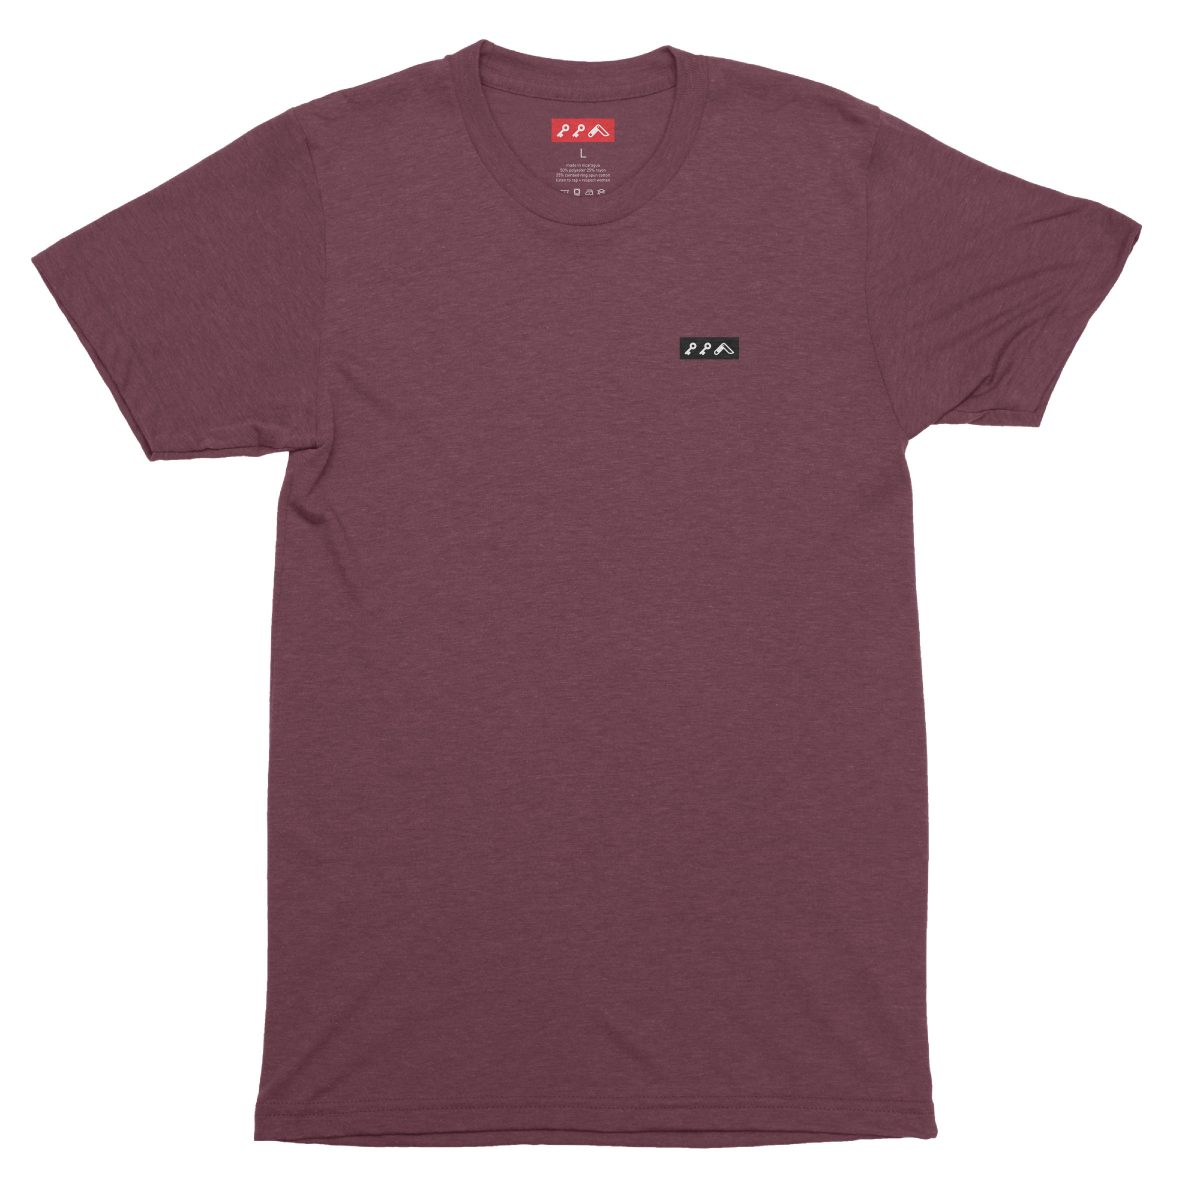 KIKICUTT black icon on a super soft maroon tri-blend t-shirt